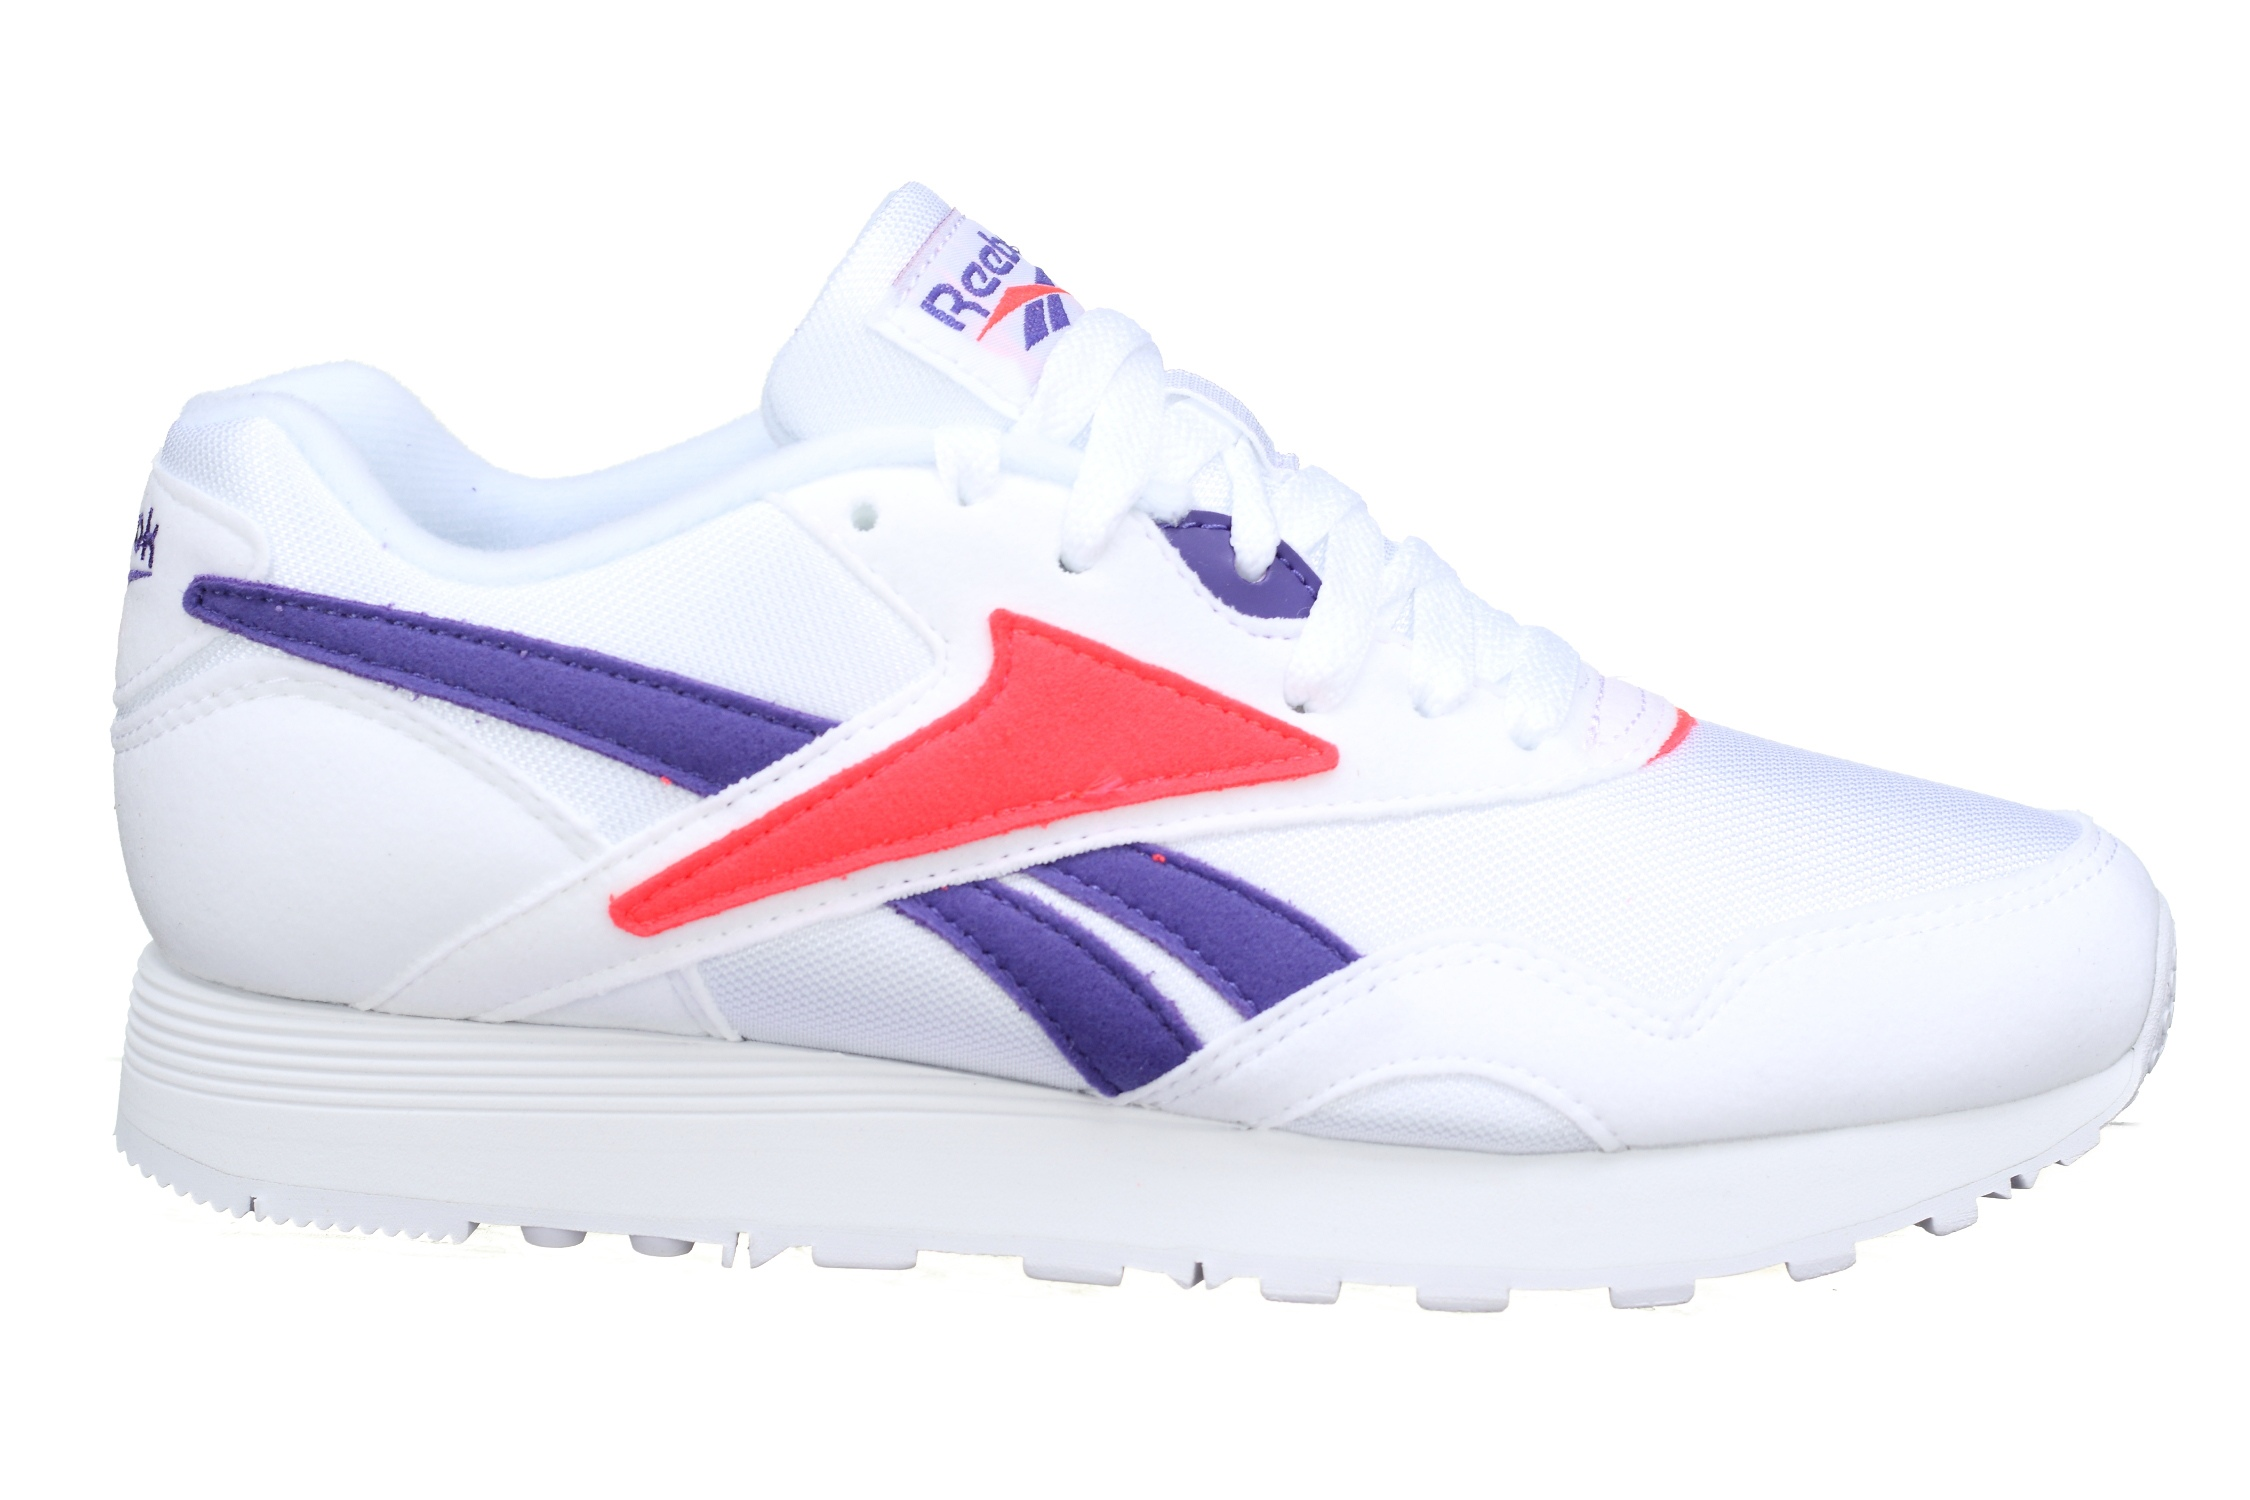 http://www.leadermode.com/176174/reebok-rapid-junior-dv4329-blanc.jpg